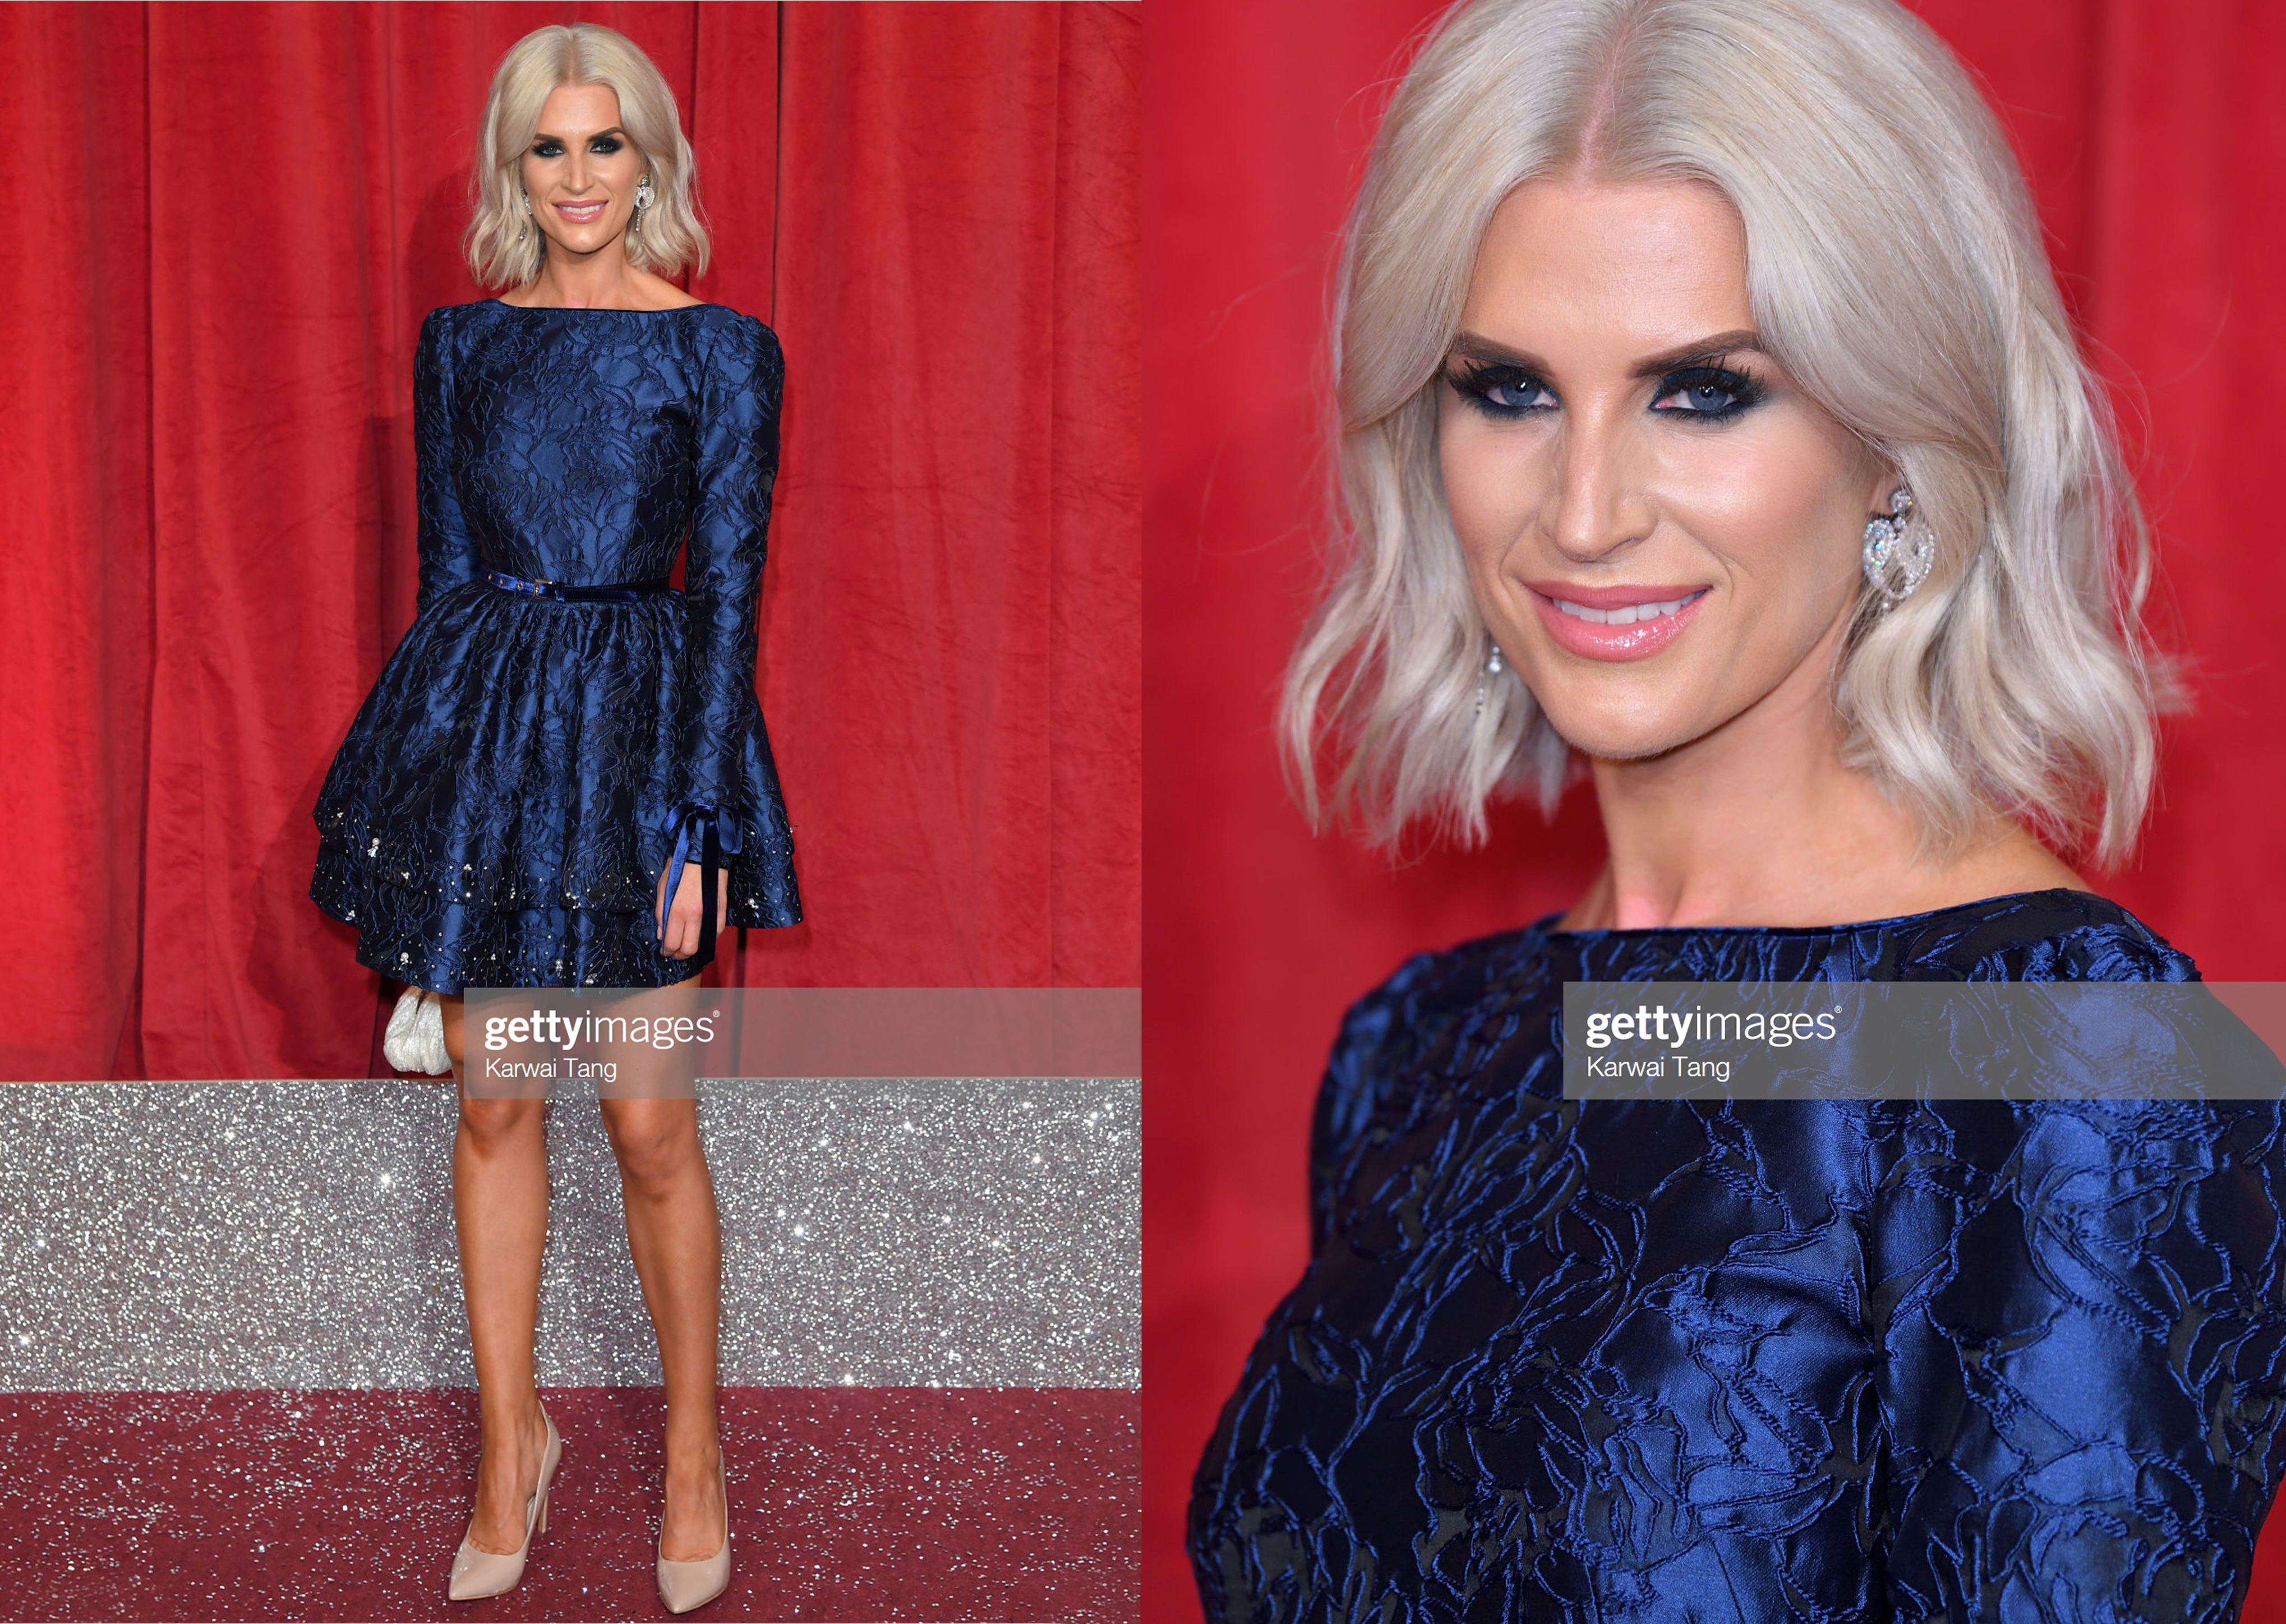 SARAH JAYNE DUNN DRESSED BY RAQUEL BALENCIA FOR BRITISH SOAP WARDS 2019